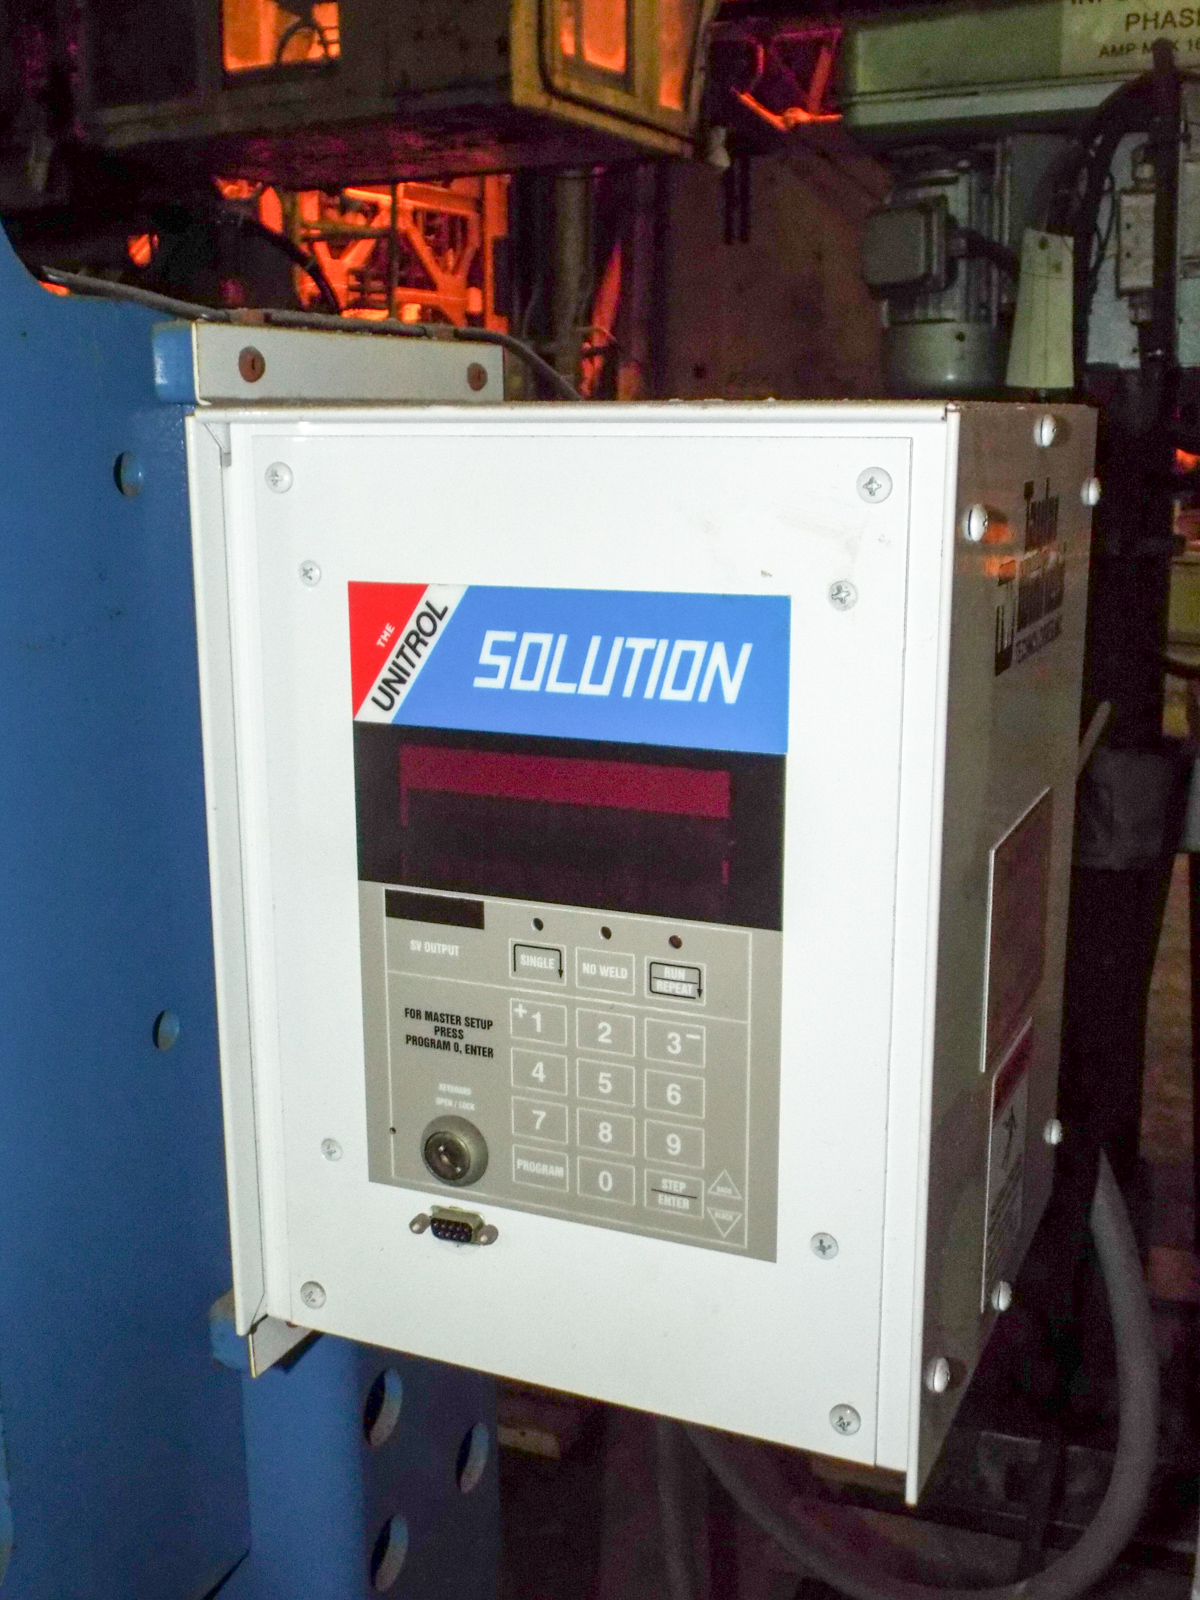 "TAYLOR WINFIELD NV-1 SPOT WELDERS WITH UNITROL SOLUTION DIGITAL CONTROL, 20 KVA, 575V, 8"" THROAT, 6"" - Image 2 of 5"